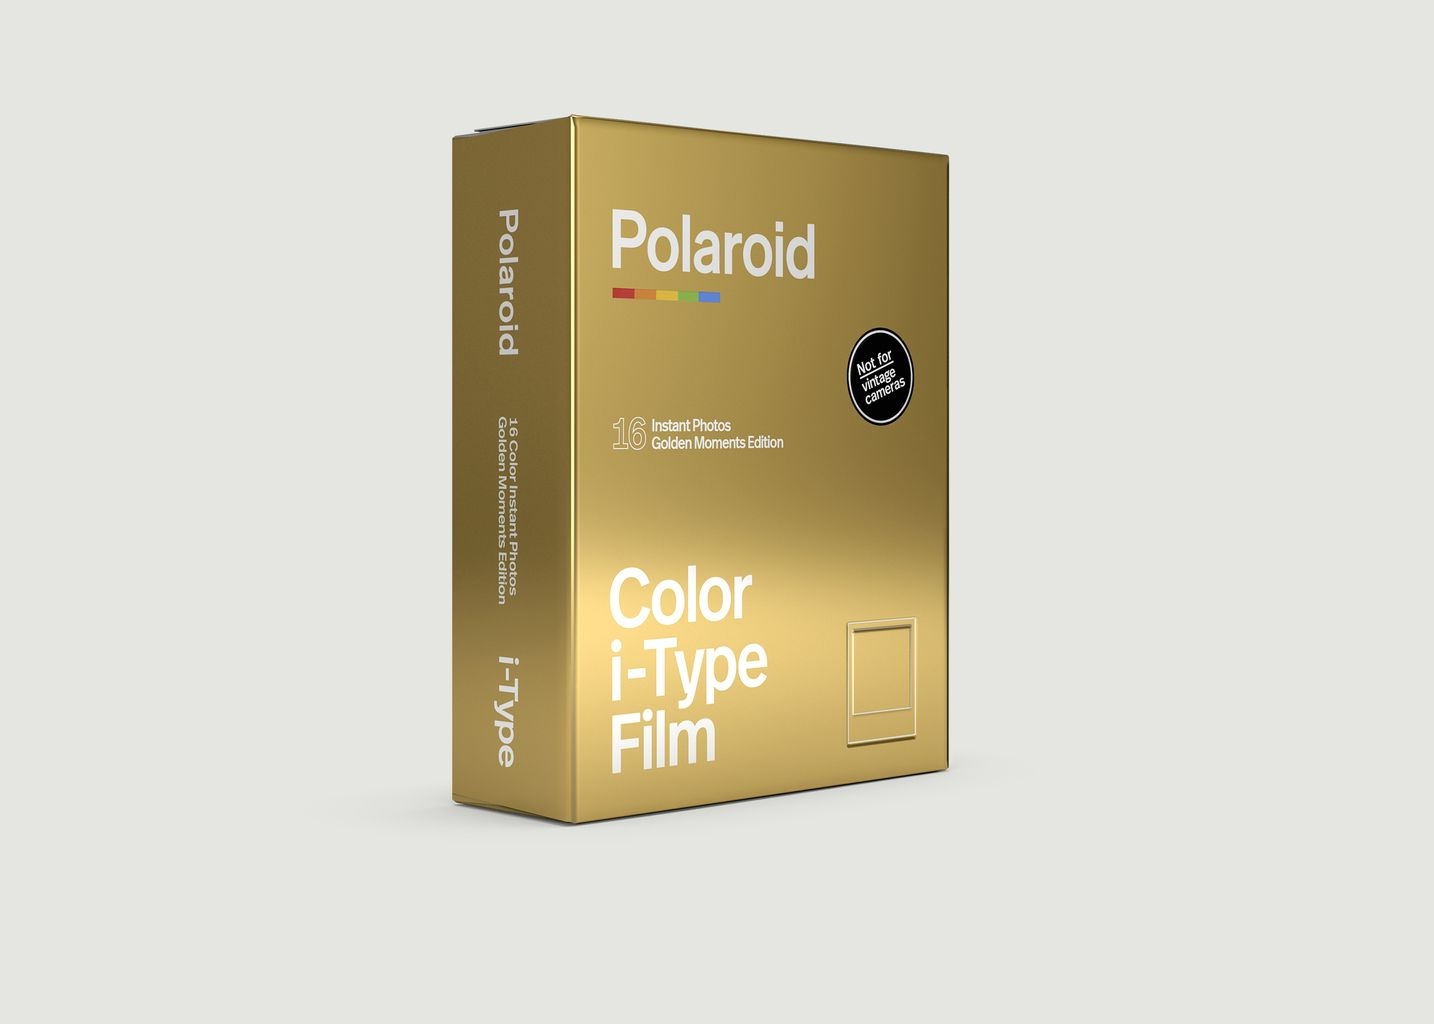 Film I-Type – GoldenMoments Double Pack - Polaroid Originals